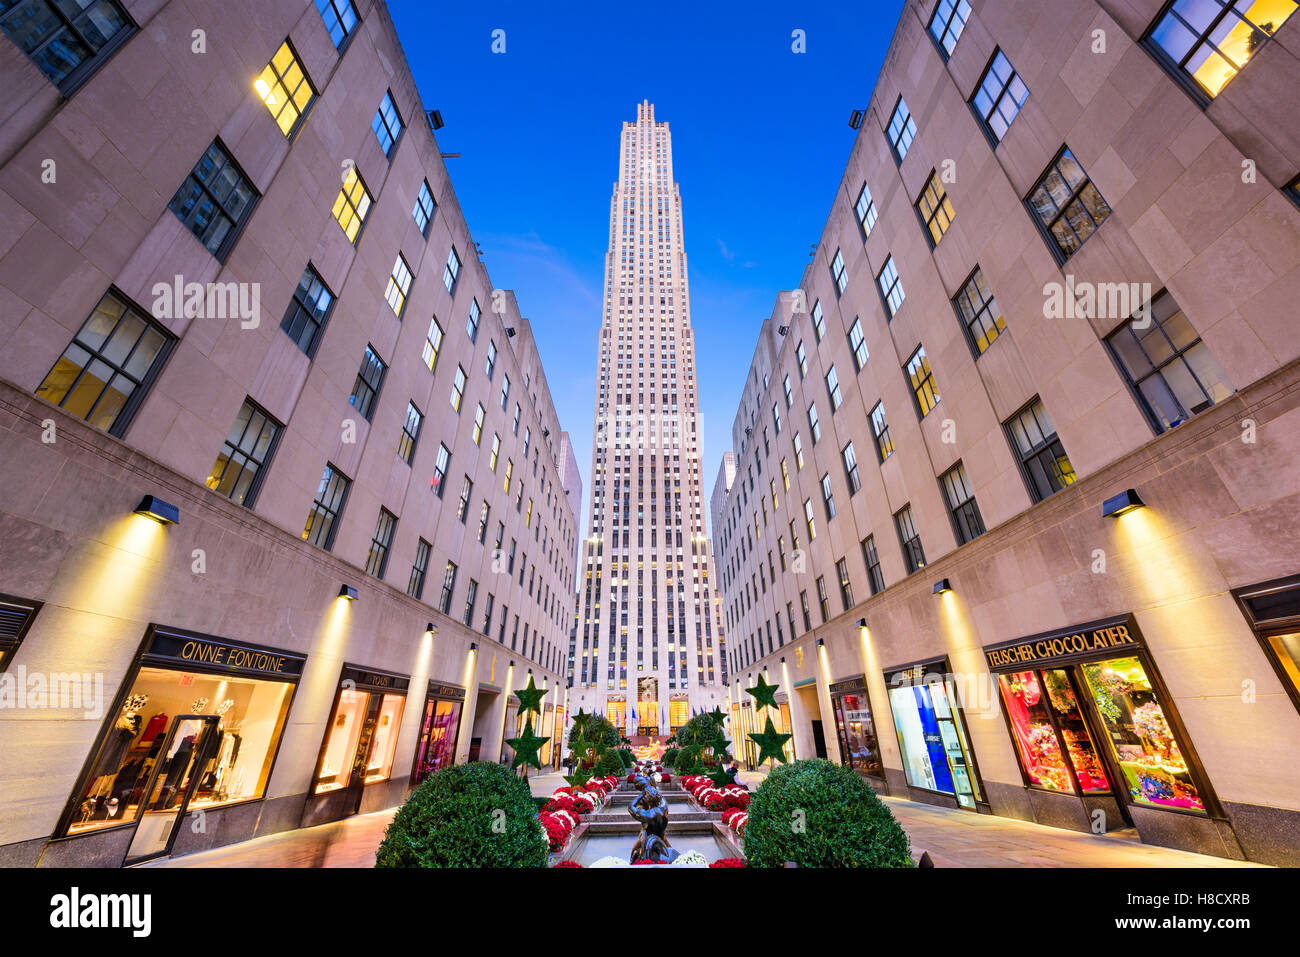 NEW YORK CITY - NOVEMBER 2, 2016: Rockefeller Center in New York. The historic landmark was completed in 1939. - Stock Image